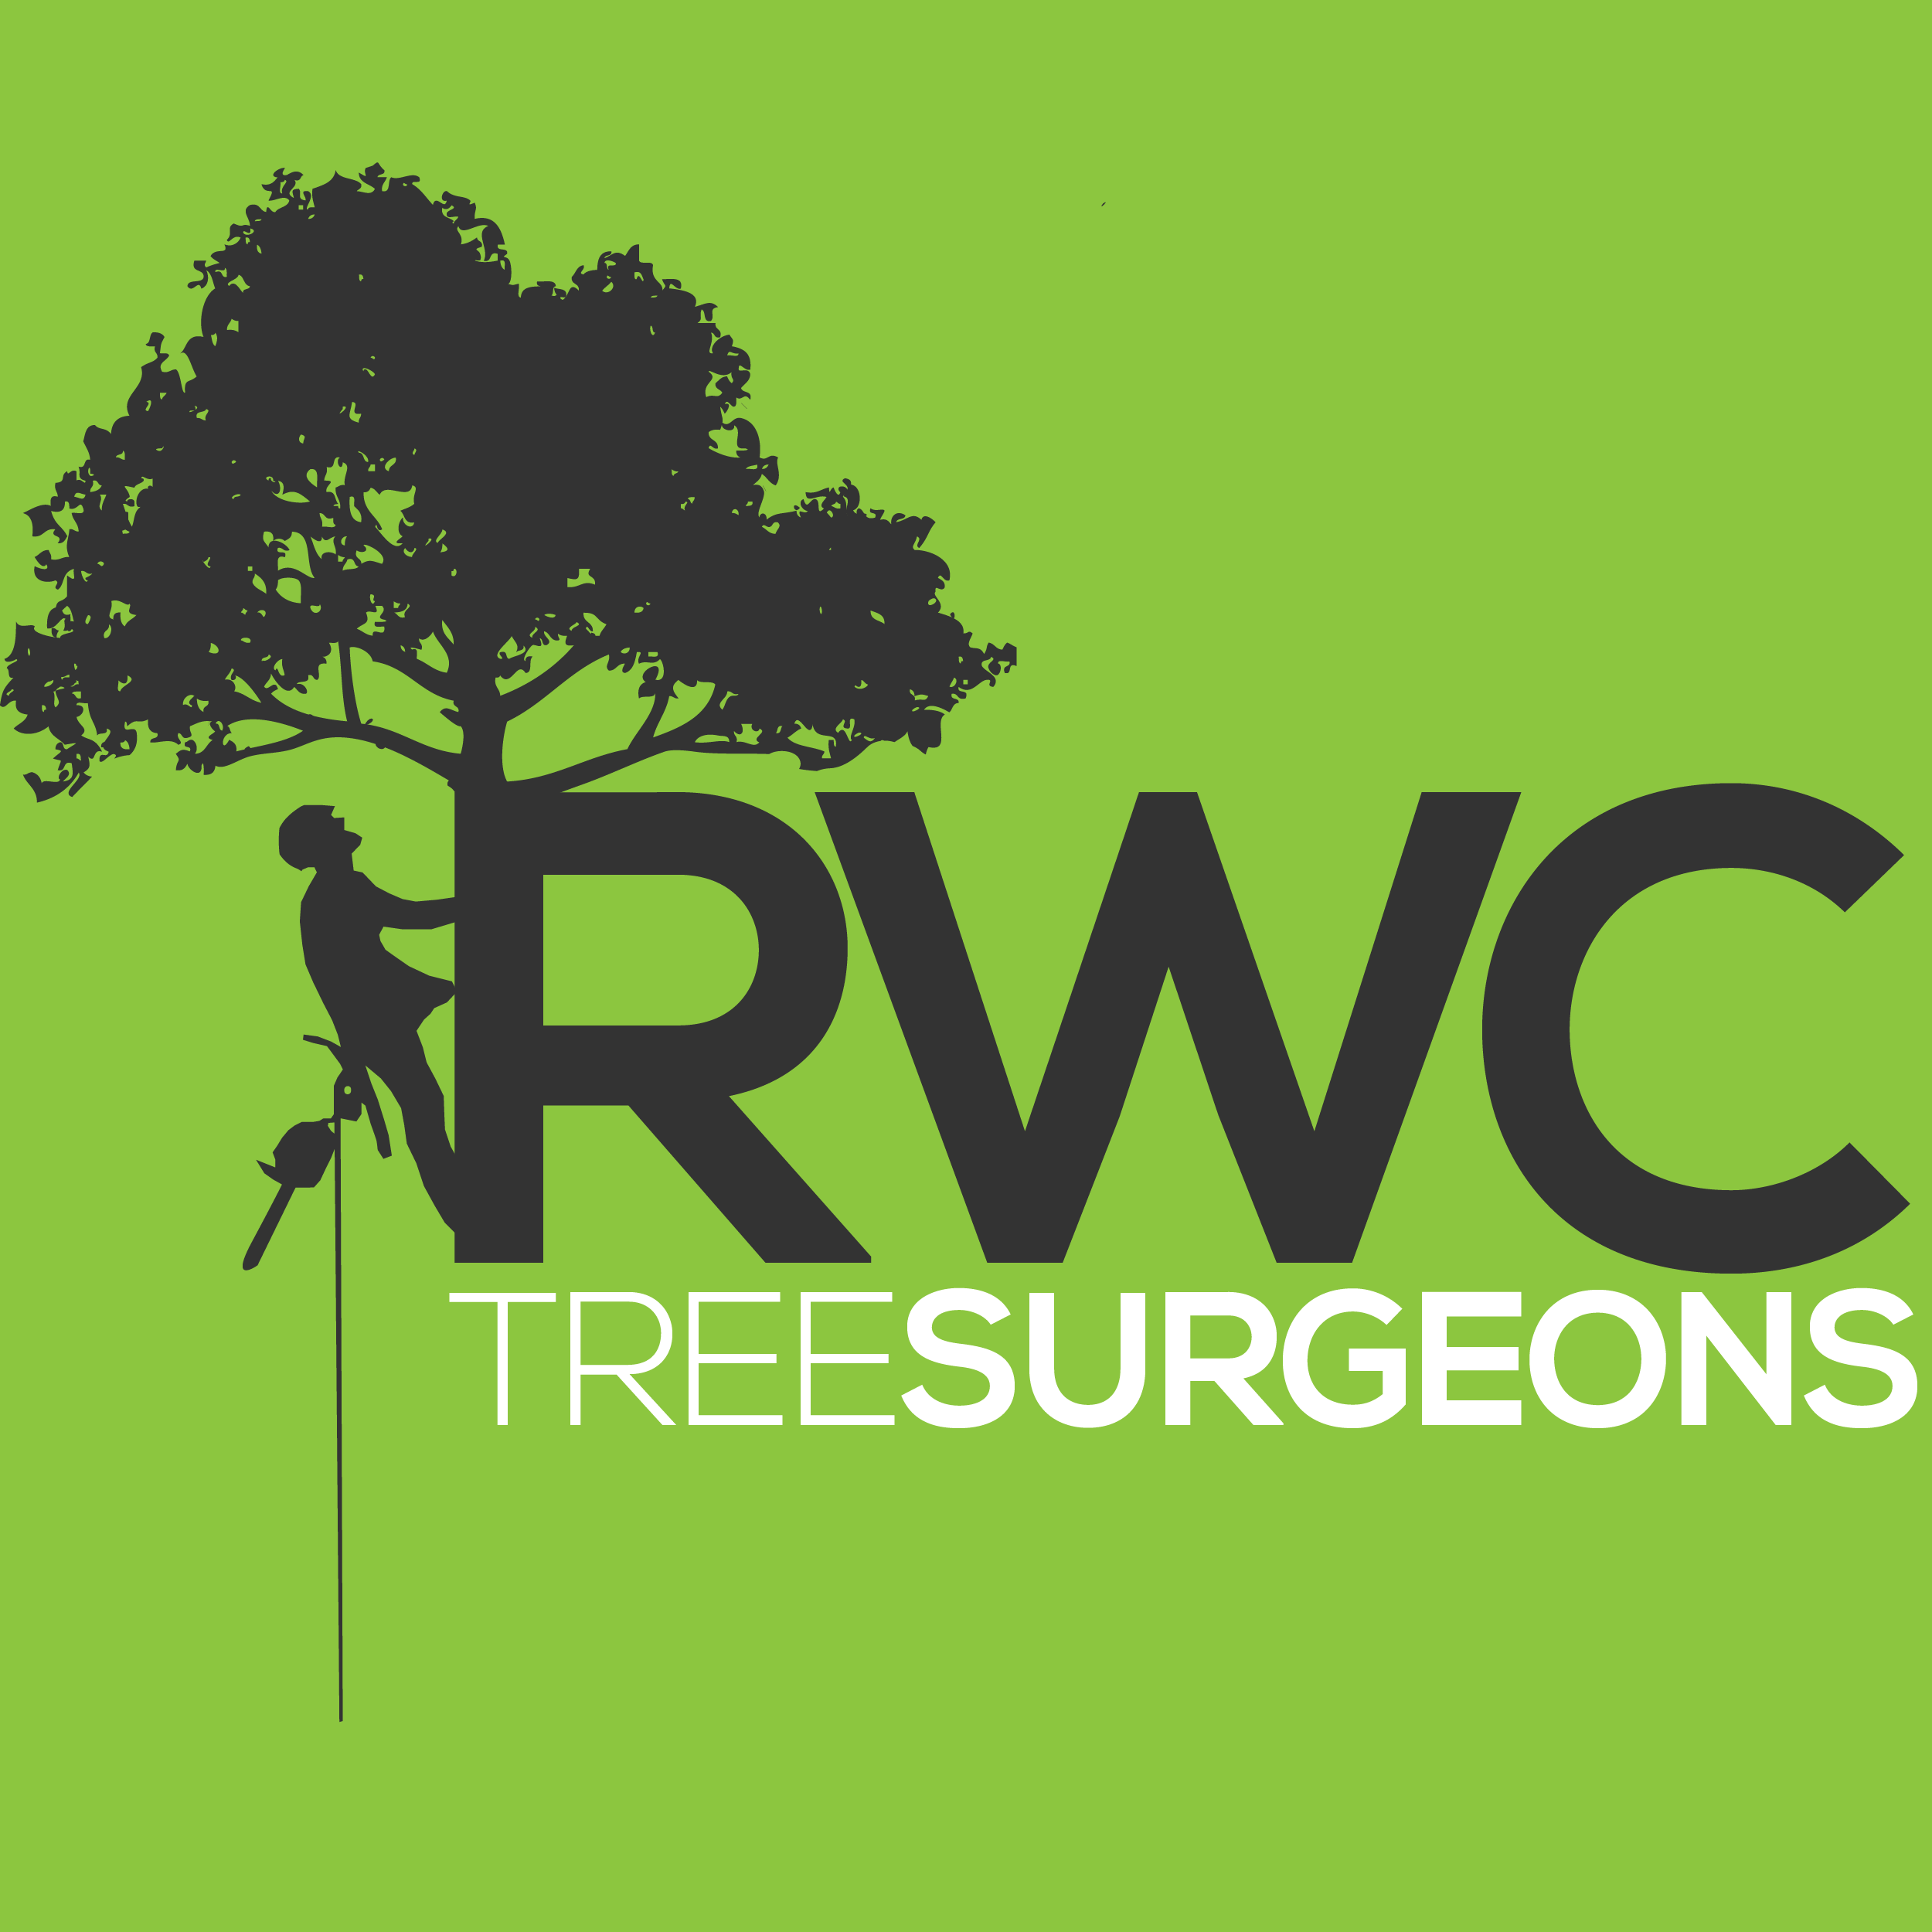 RWC Tree Surgeons - Leeds, West Yorkshire LS21 2AR - 01943 461294 | ShowMeLocal.com